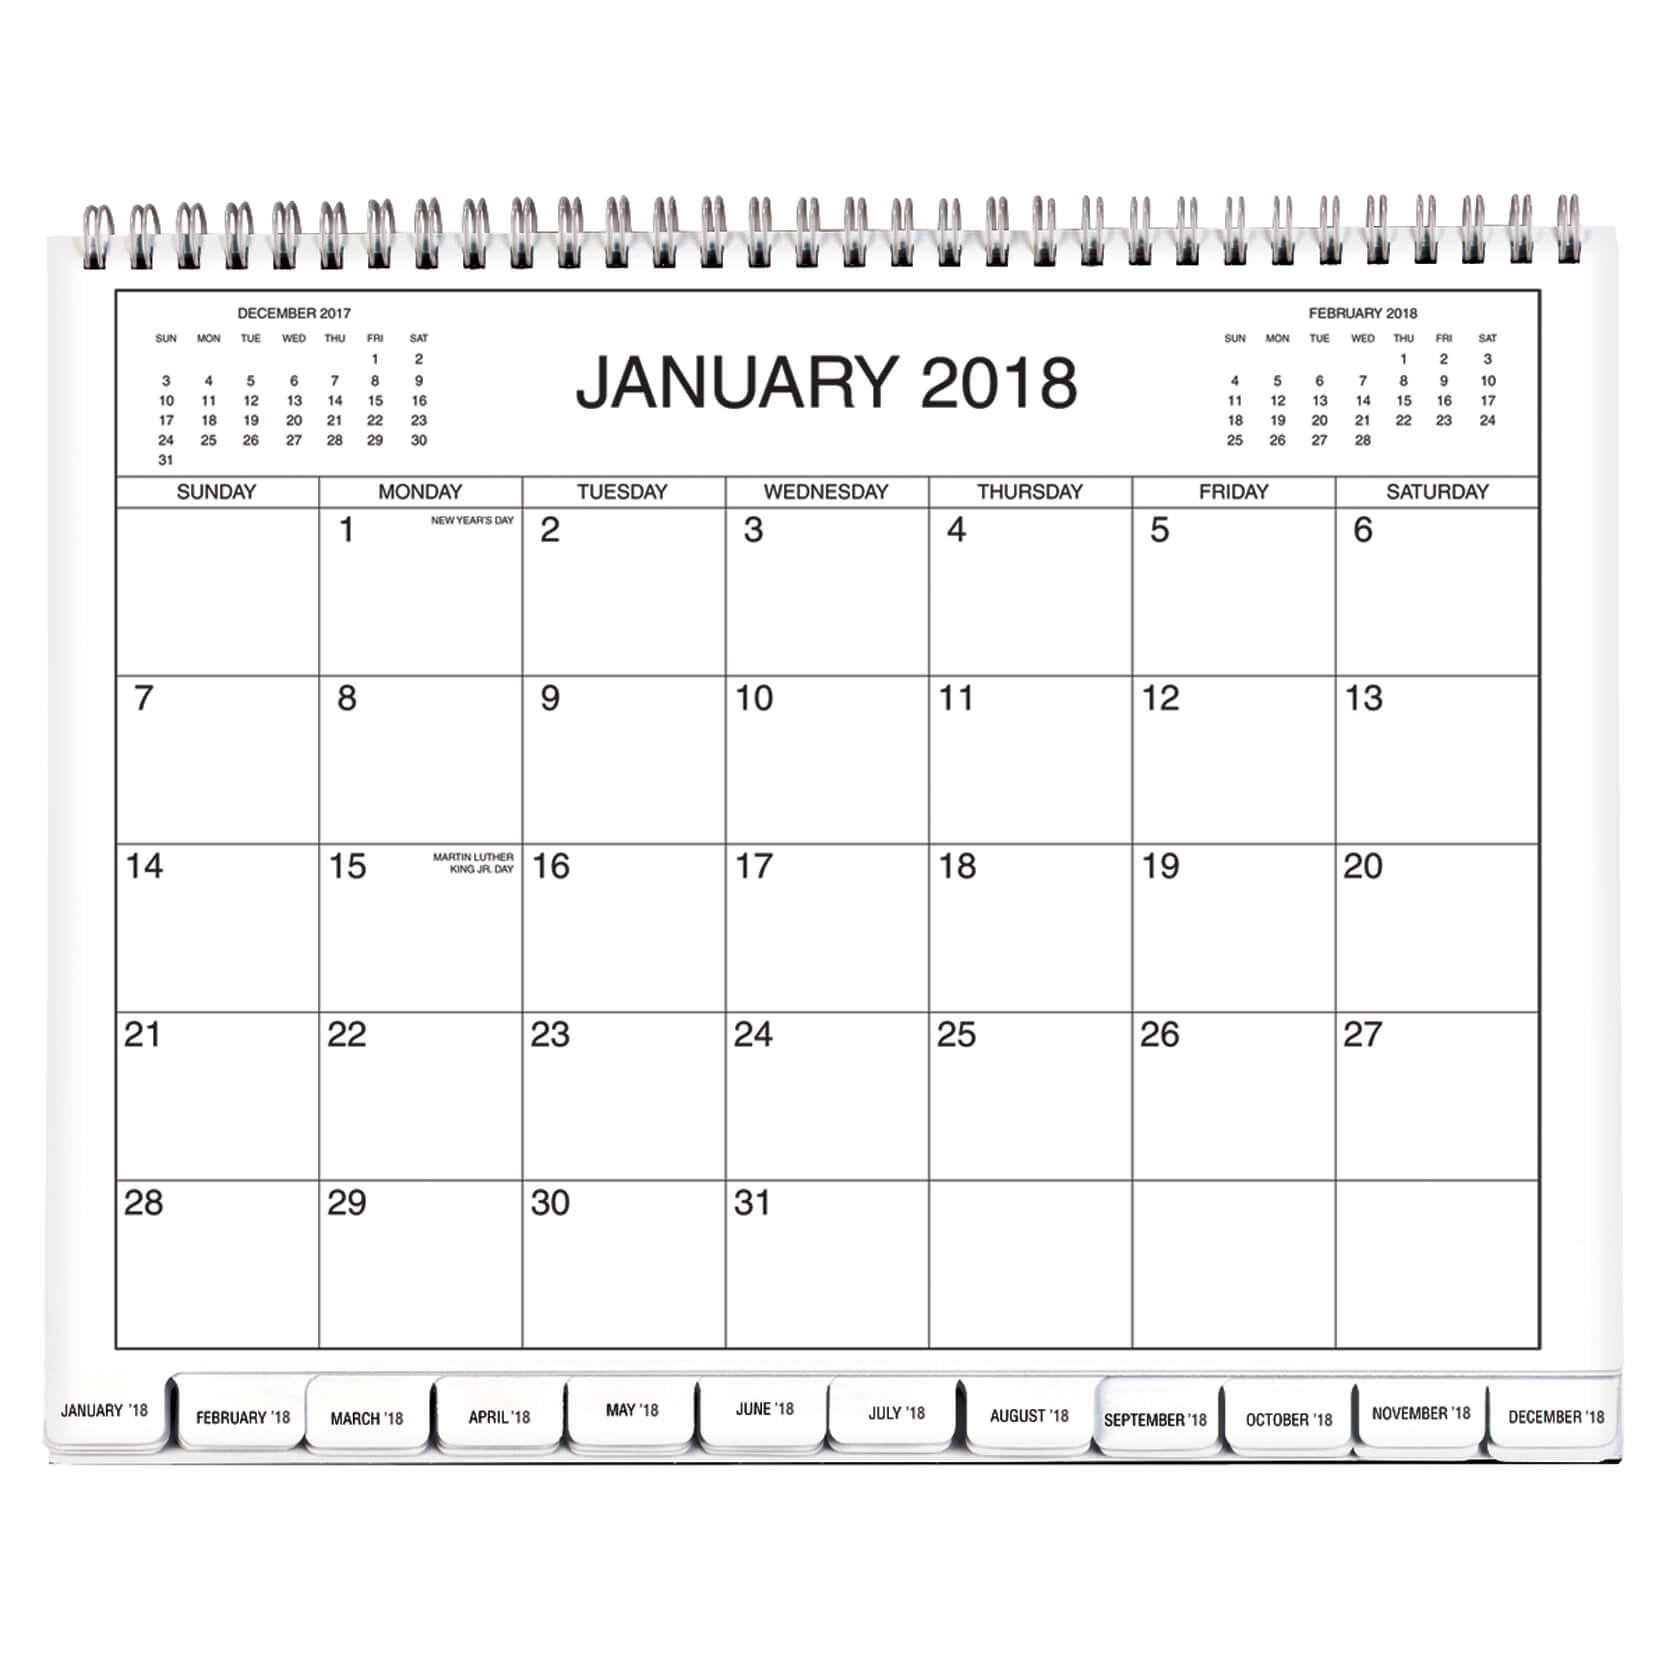 5 Year Calendar 2018-2019-2020-2021-2022 - Monthly Calendar - Walter with Calendar 2019-2020 365